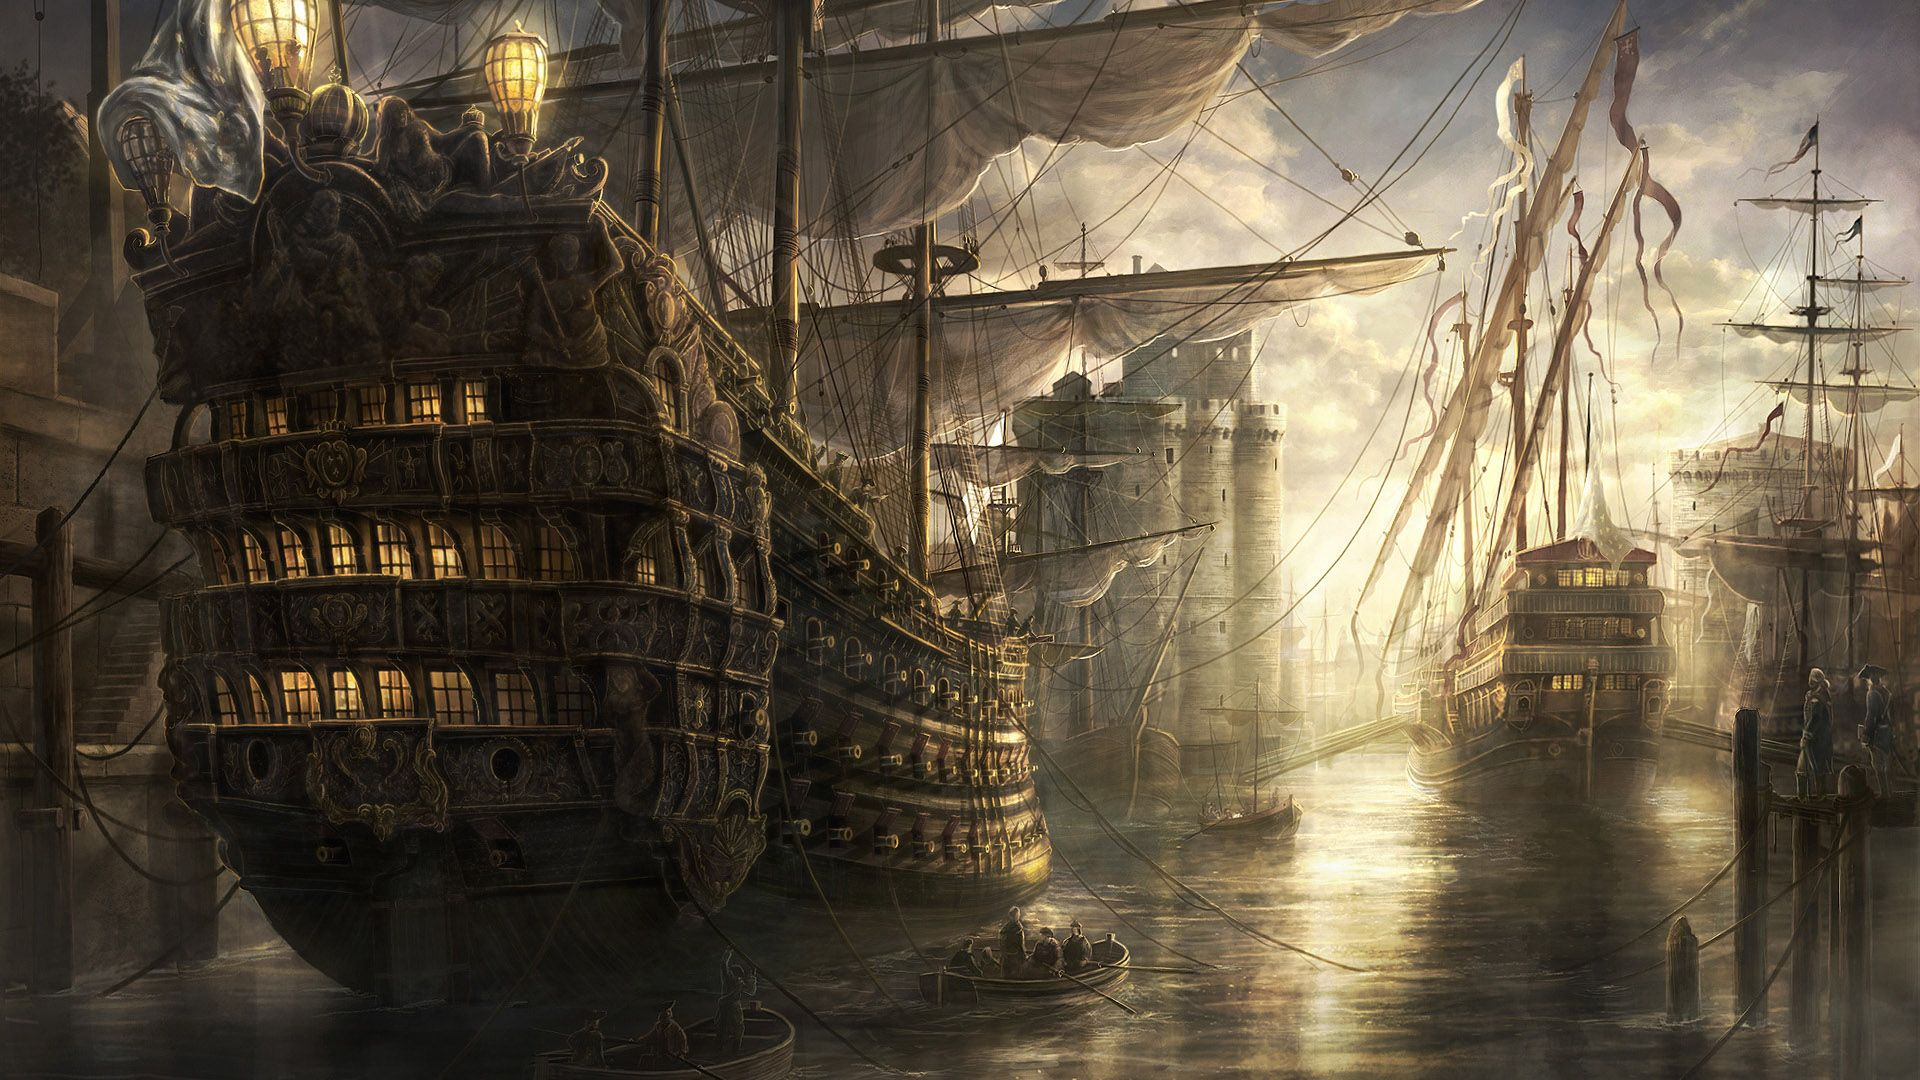 Fantasy ship cliff jolly roger pirate ship rock lightning wallpaper - Pin By Antonio R On Barlovento Pinterest High Quality Wallpapers And Wallpaper